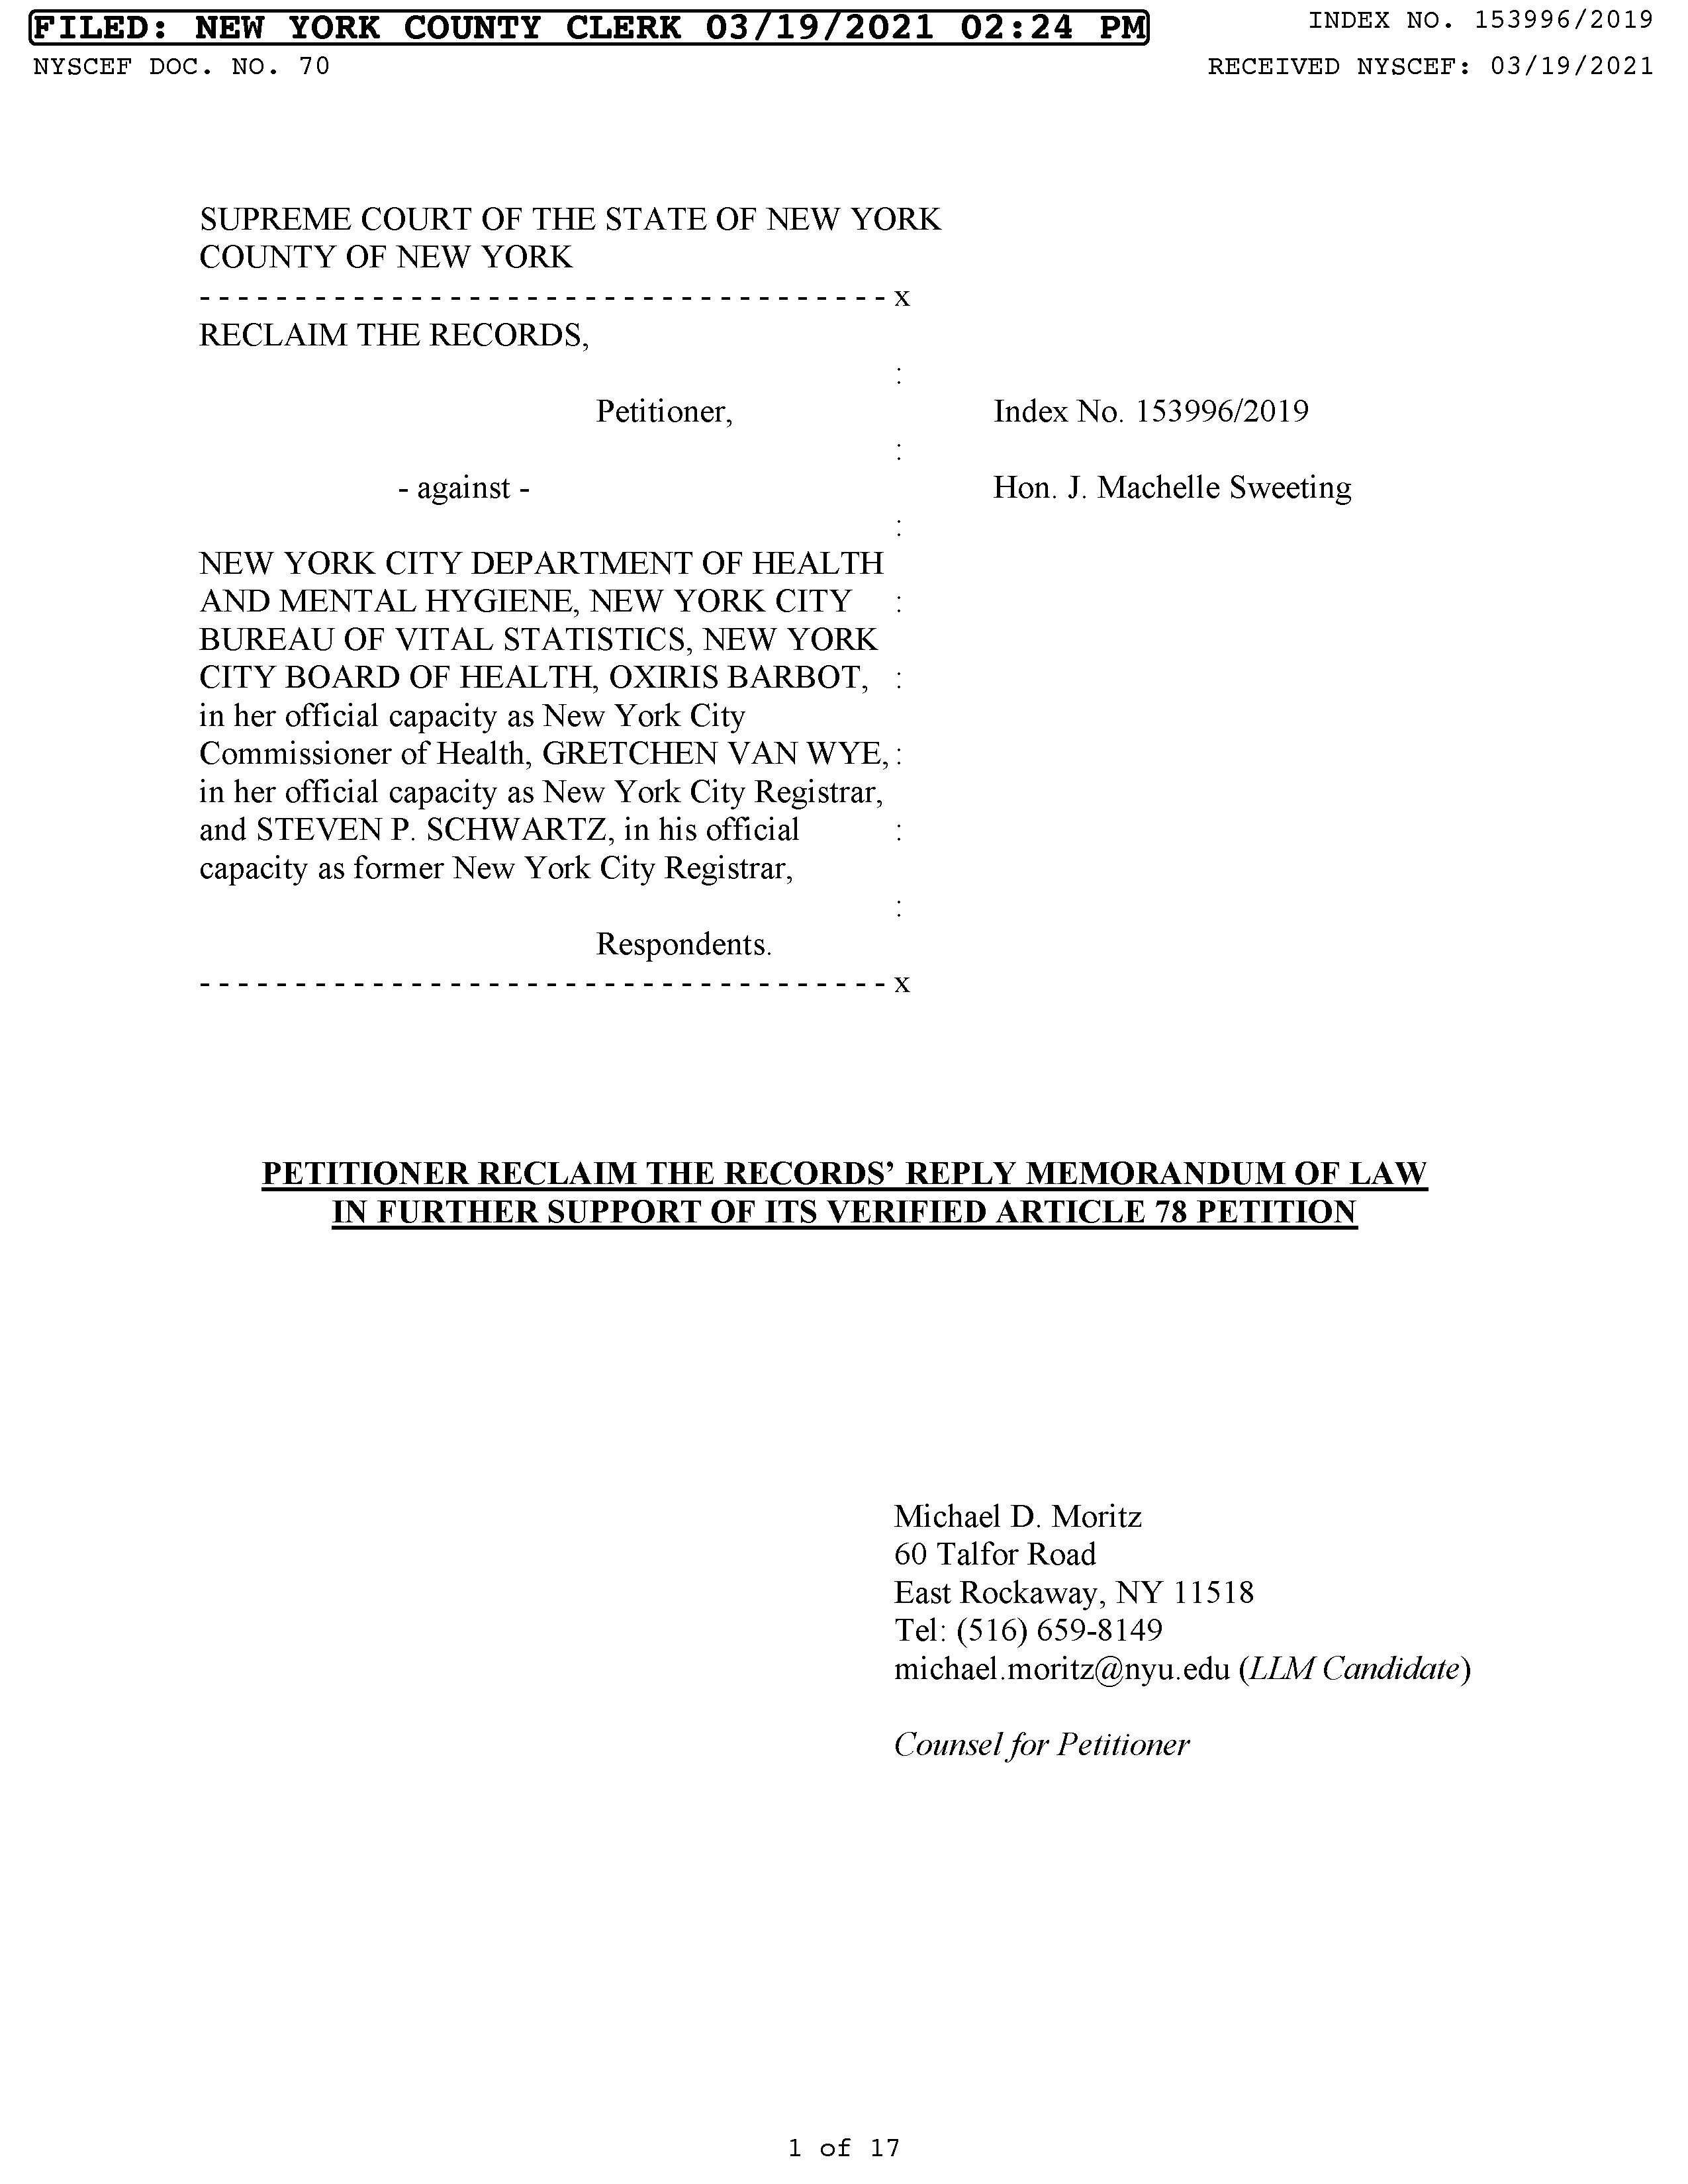 Our Memorandum of Law In Further Support of Our Petition (March 19, 2021)